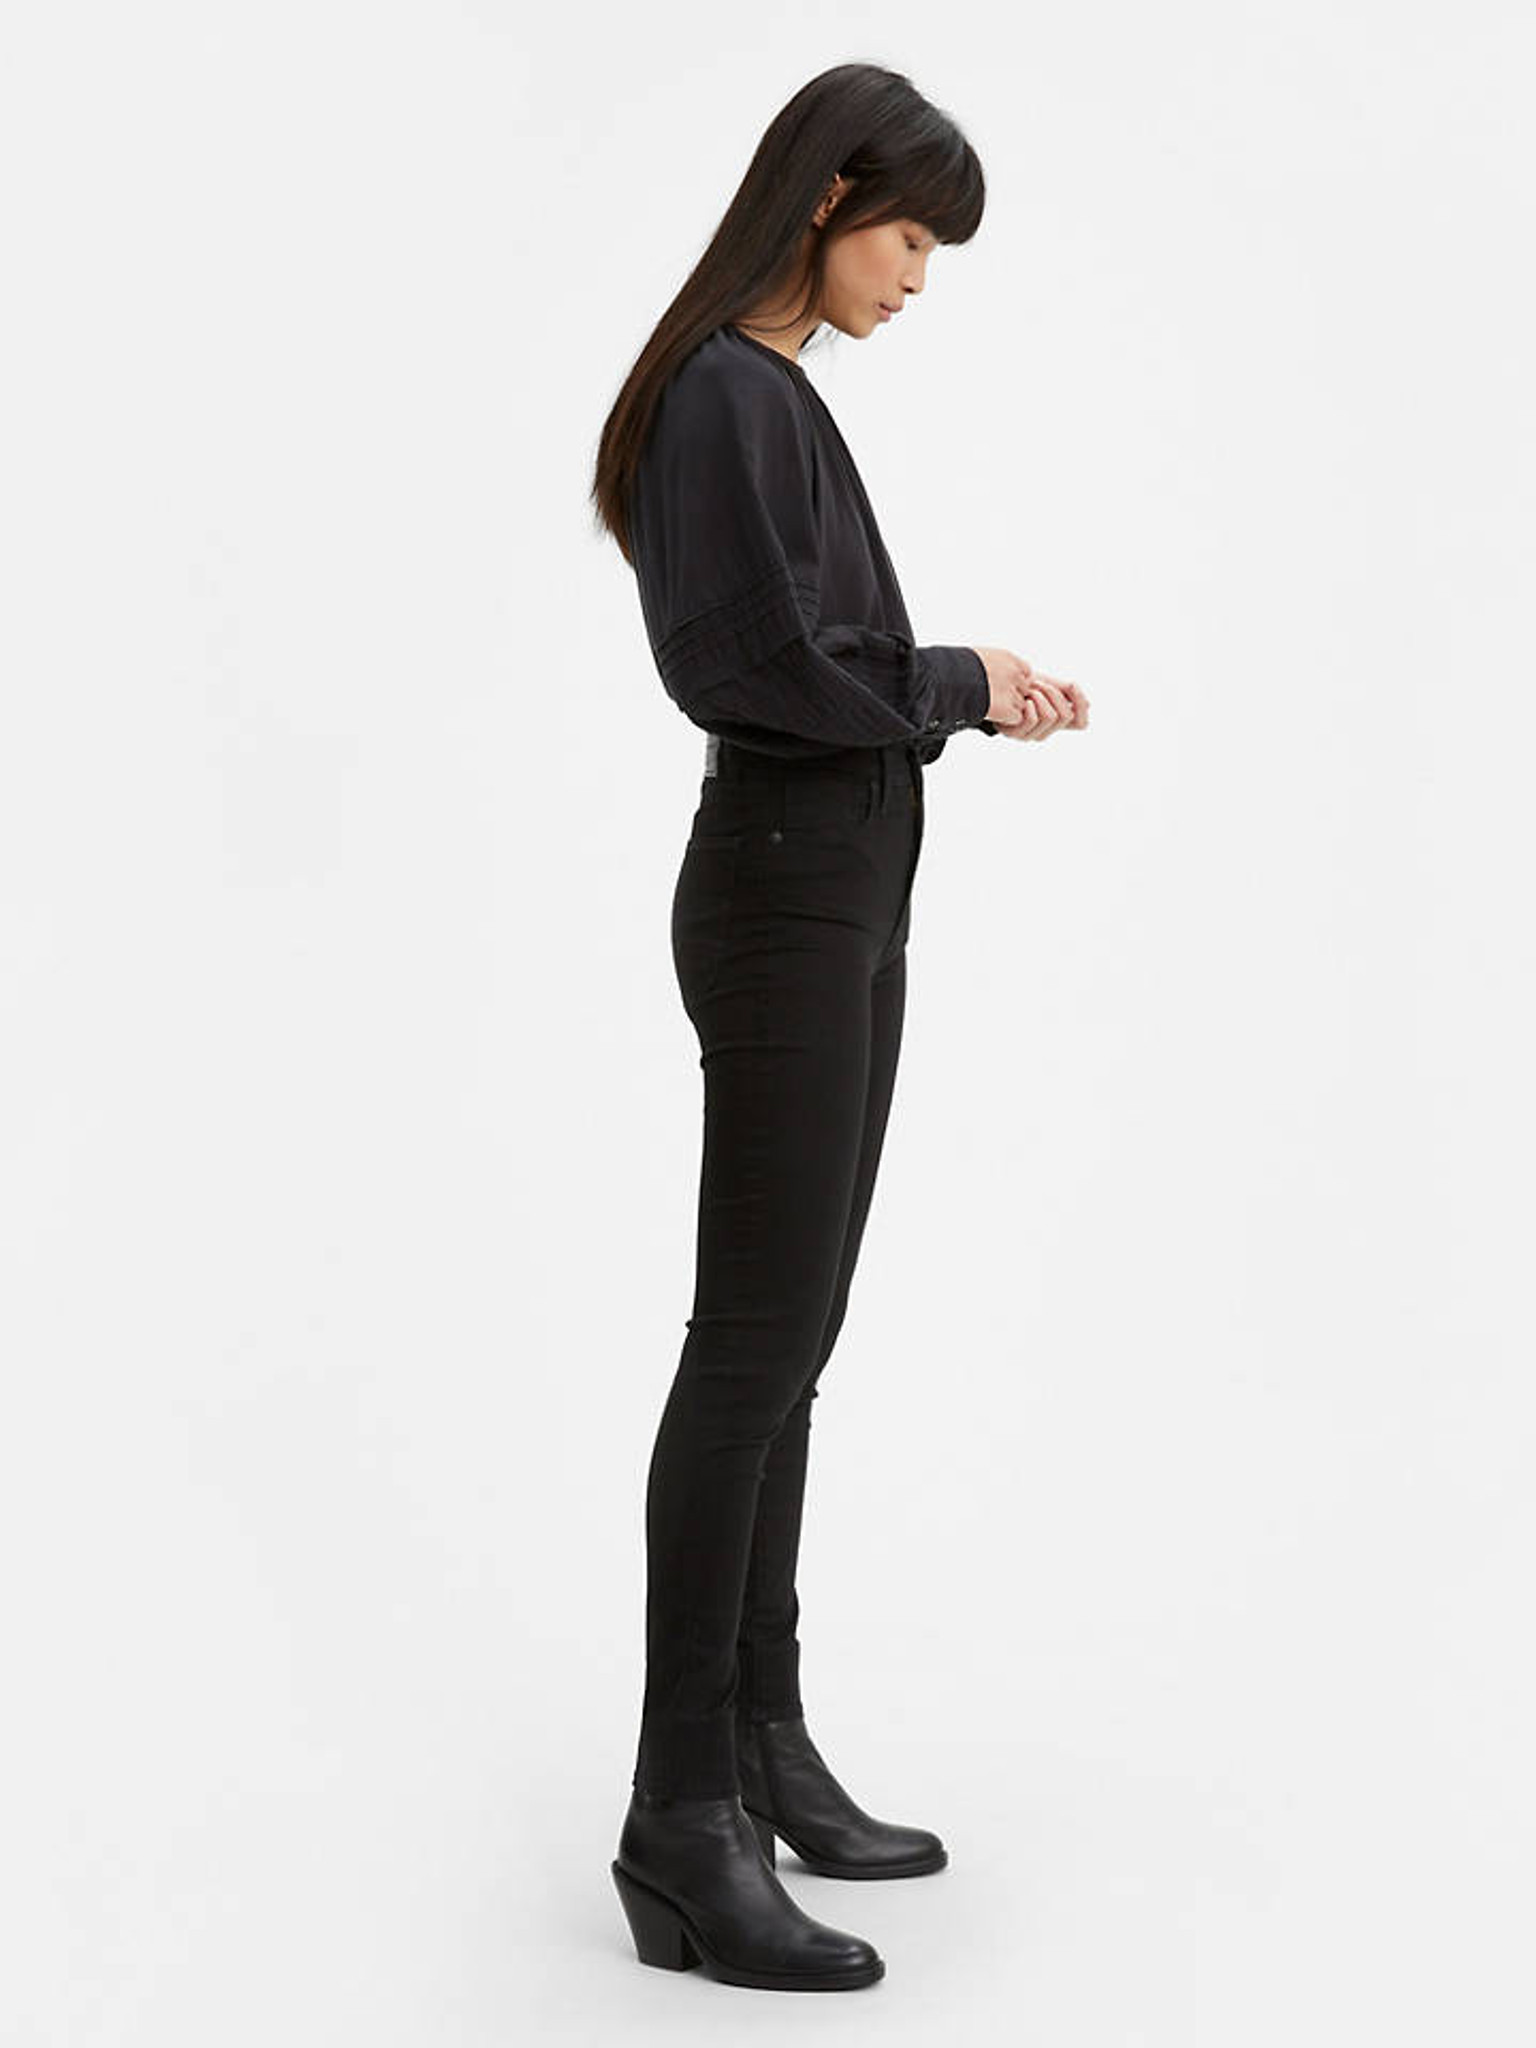 "An ultra-high rise. A super-sleek leg. The perfect amount of stretch. Levi's® Mile High Super Skinny Jeans accentuate your shape in all the right places. This figure-flattering fit does it all. Ultra high rise with a super sleek silhouette Crafted with the perfect amount of stretch for all day comfort Super skinny fit to accentuate your shape and whatever shoe you choose to wear Branded with iconic Levi's® leather patch at back waist Style # 227910052 Color: Black Celestial How it Fits Extra high rise Slim through hip and thigh Super skinny leg Measurements from size 27: Rise: 10.875"" Inseam: 30"" Leg opening: 9.25"" Composition & Care 85% Cotton, 9% Elastomultiester, 6% Elastane Denim Extreme stretch Zip fly Imported"